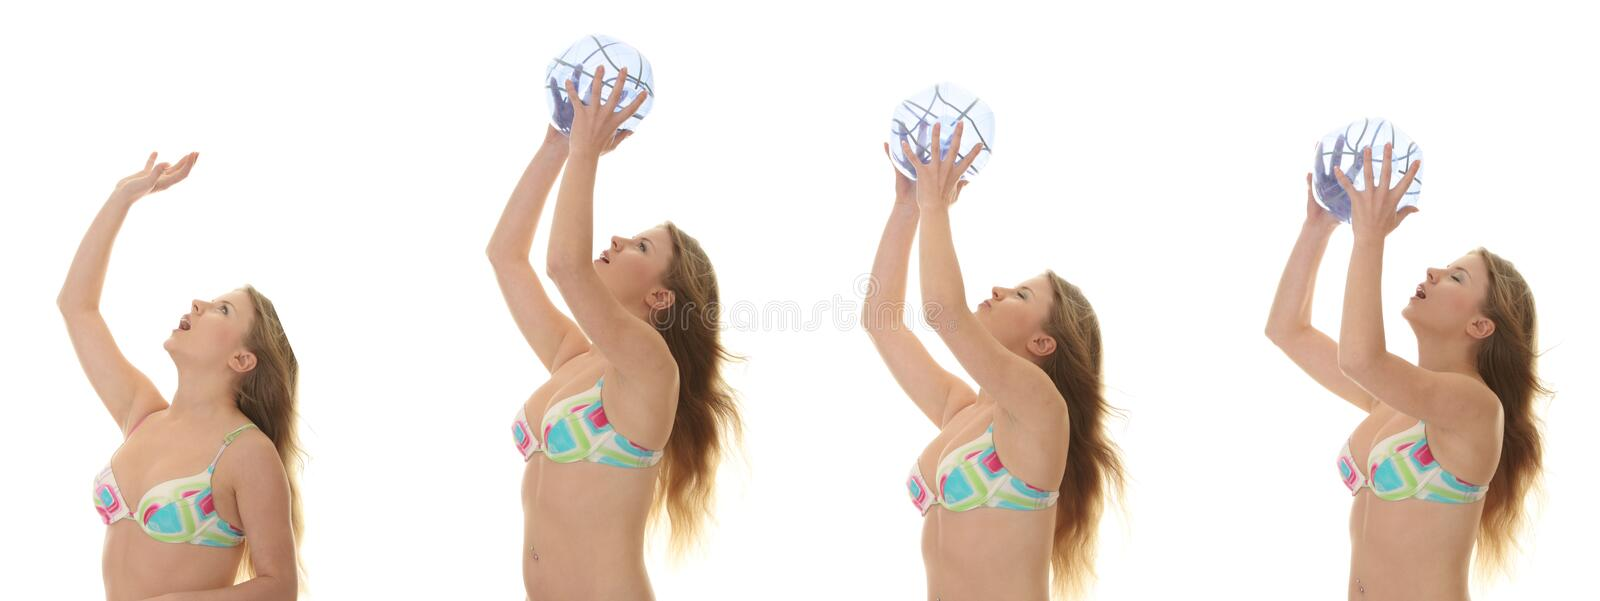 Young beautiful woman catching a beach ball royalty free stock images